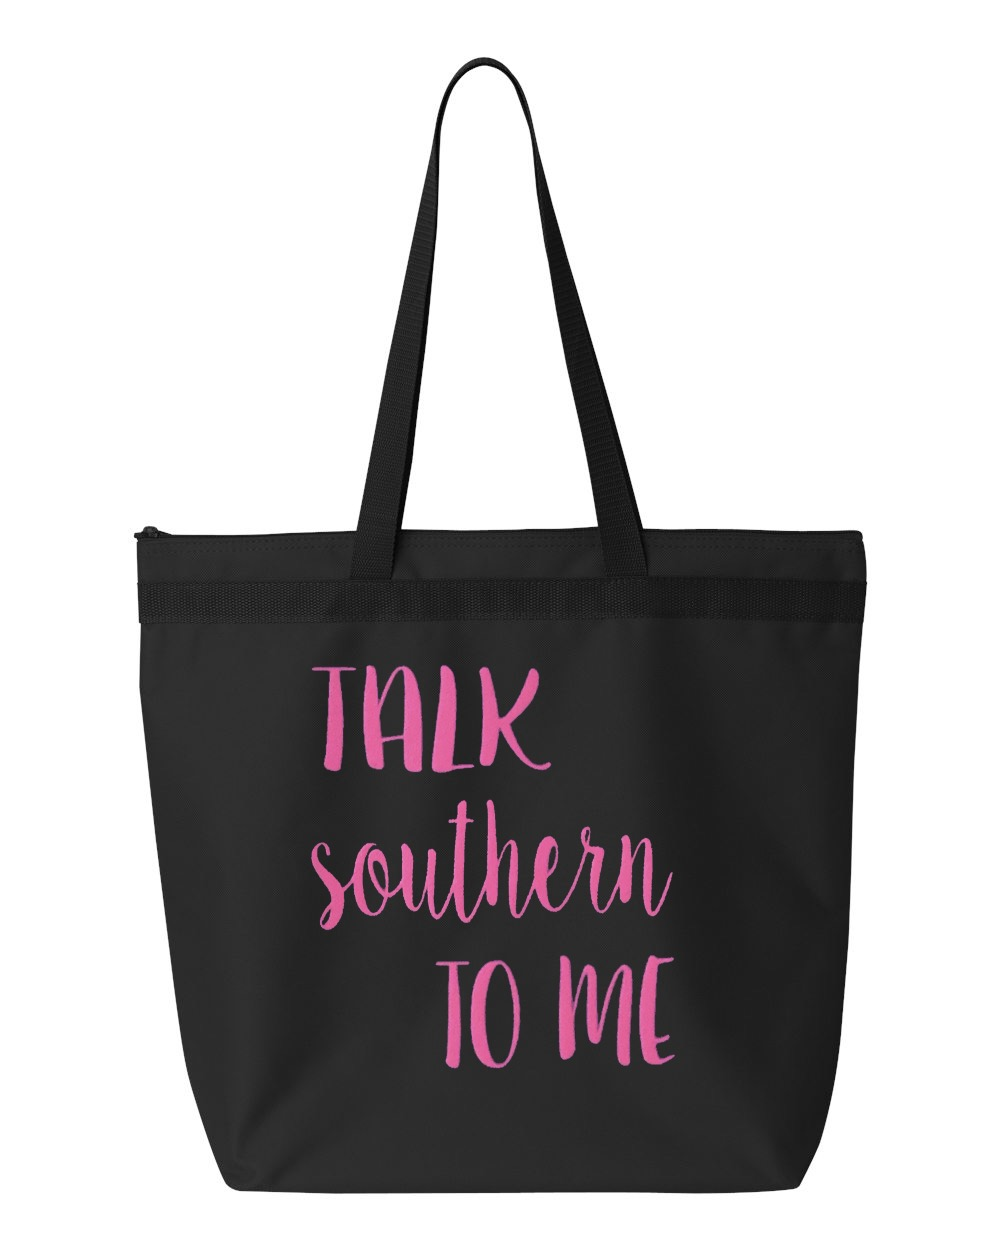 Talk Southern To Me.  Zipper Tote Bag